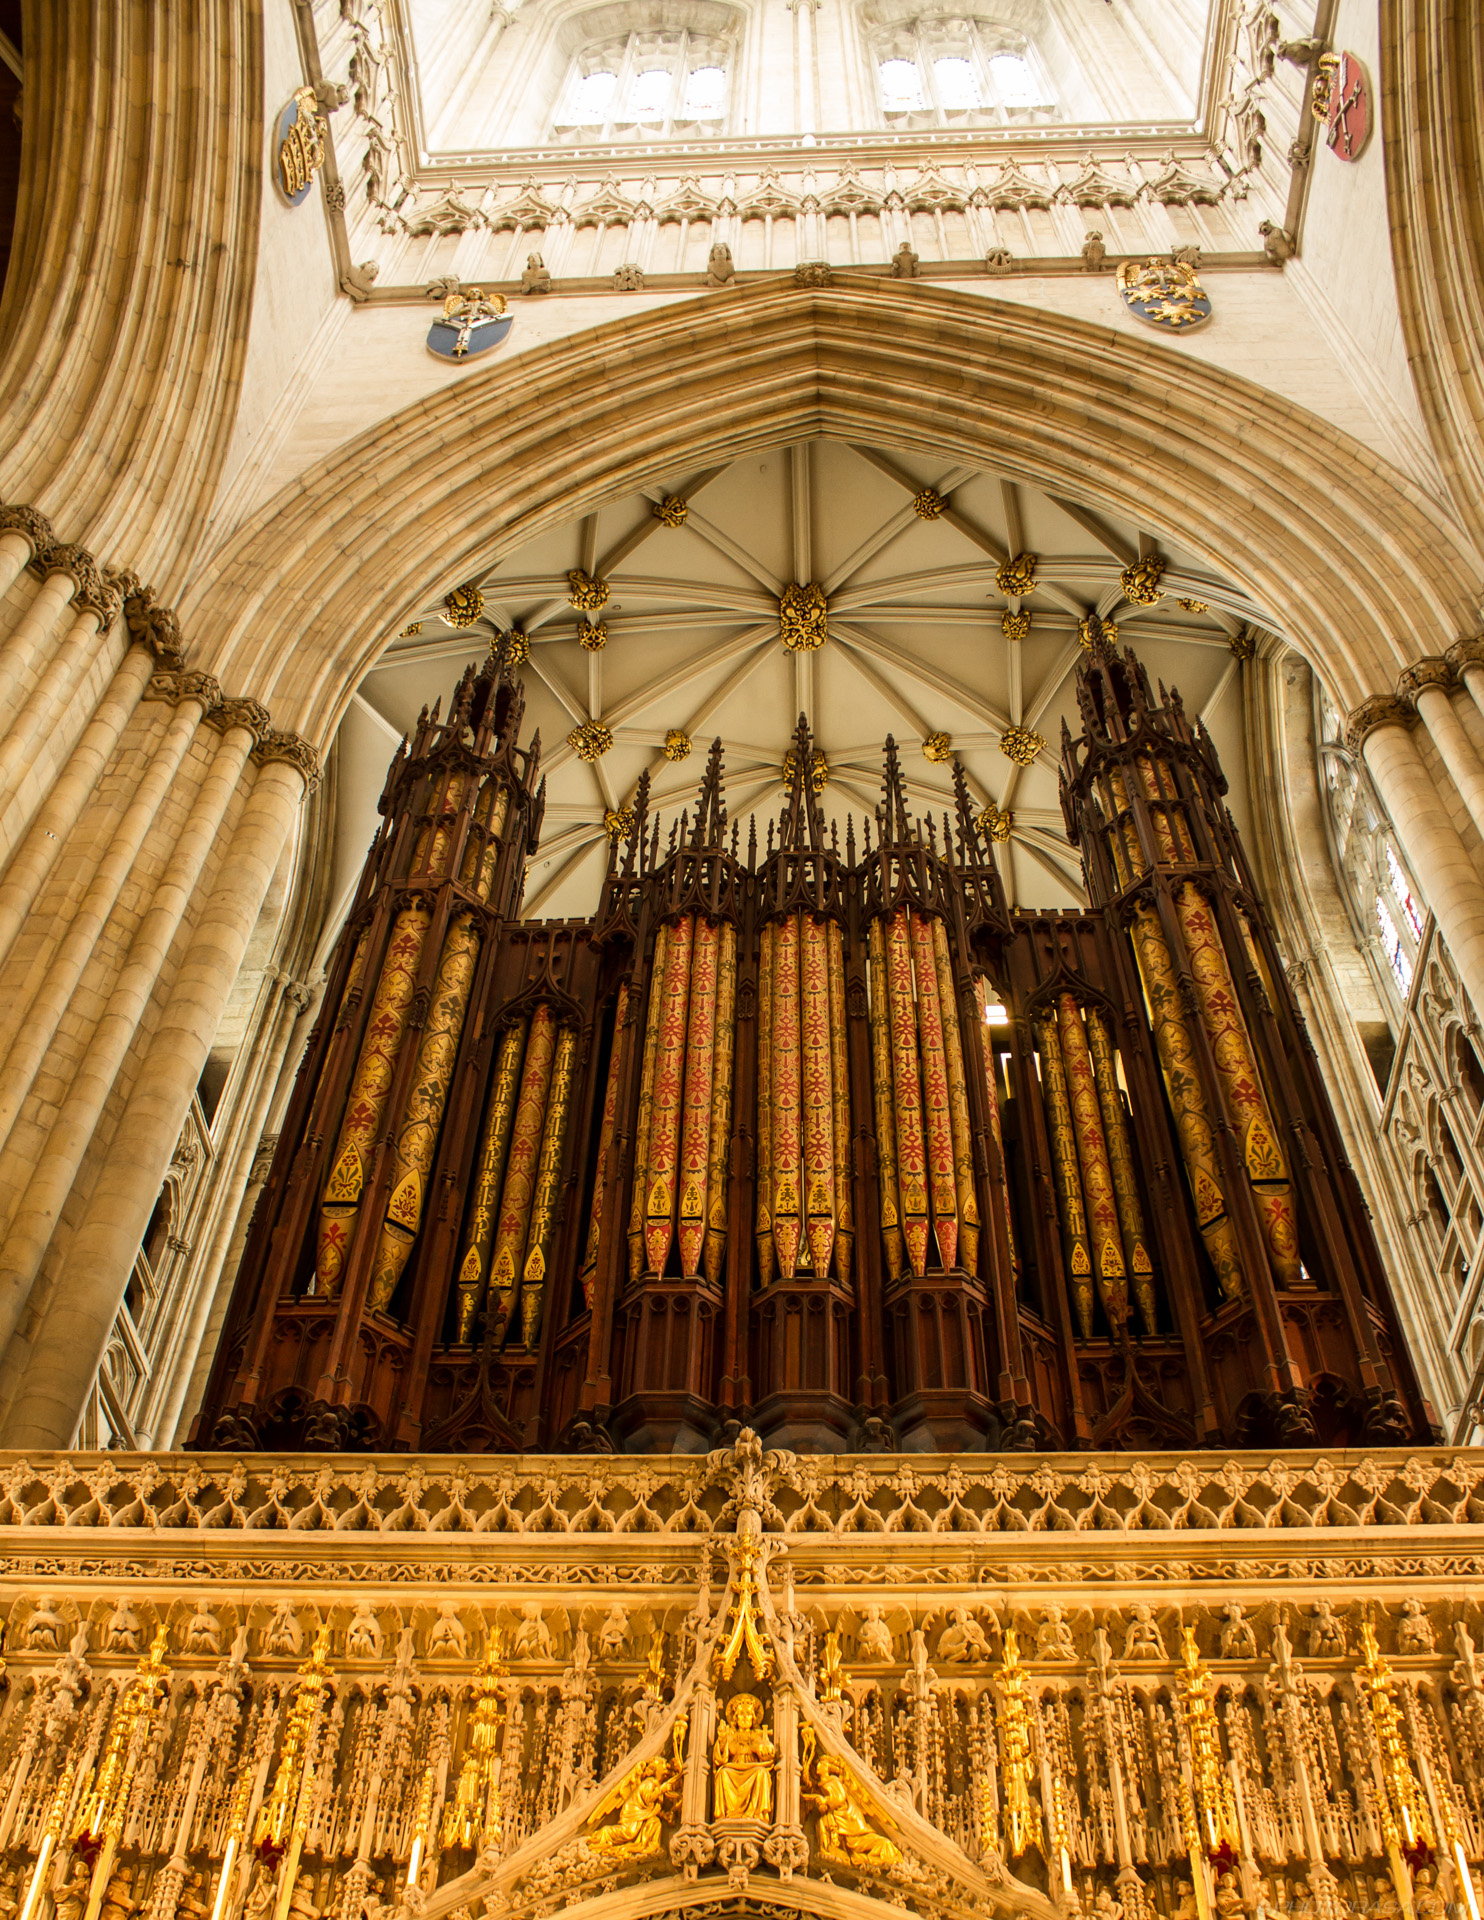 https://photorasa.com/yorkminster-cathedral/majestic-cathedral-organ/